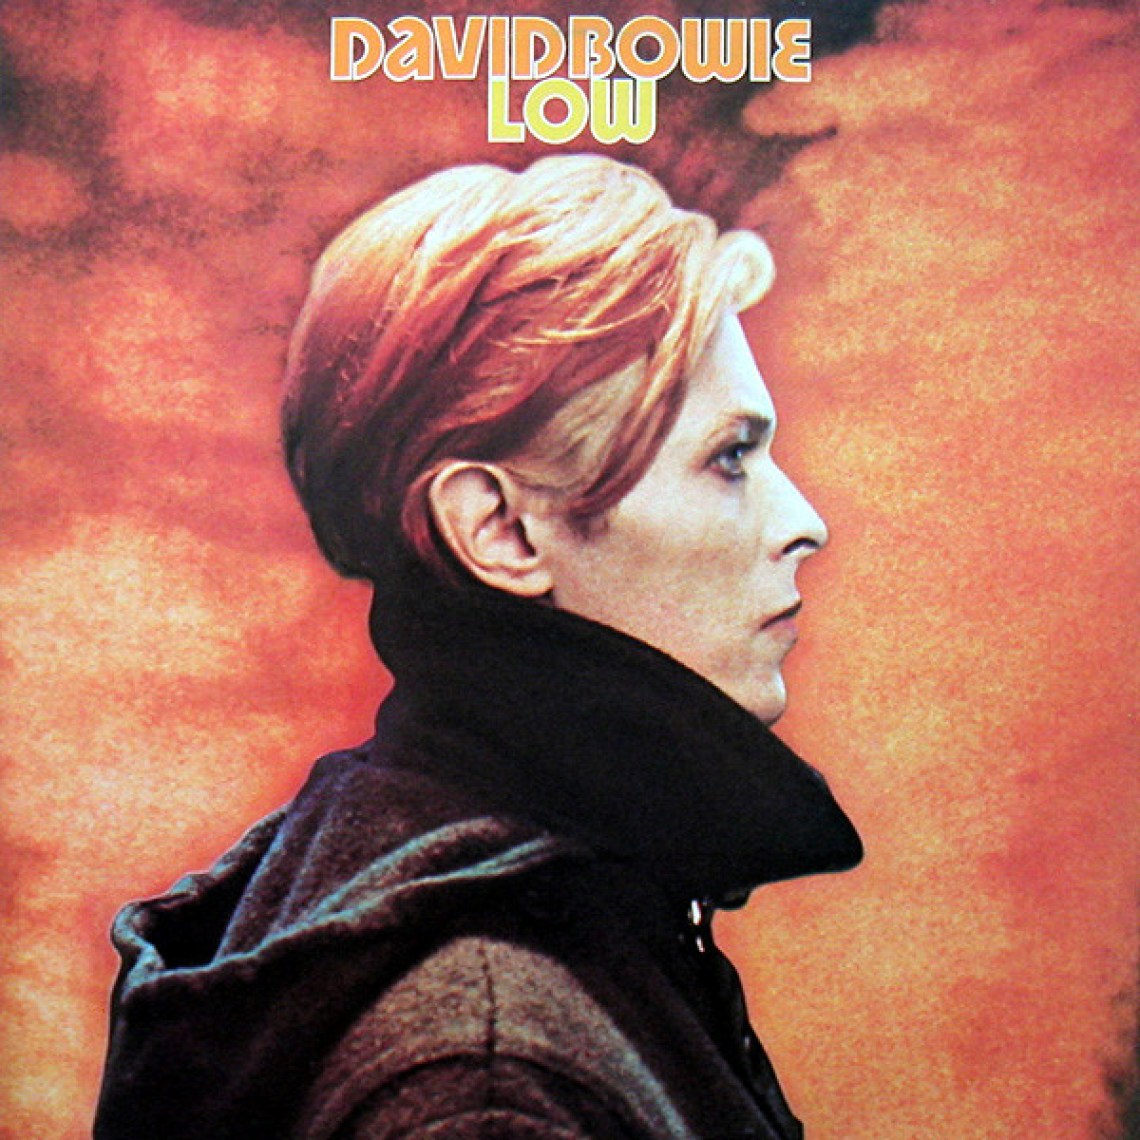 Low (1977) album cover, David Bowie.